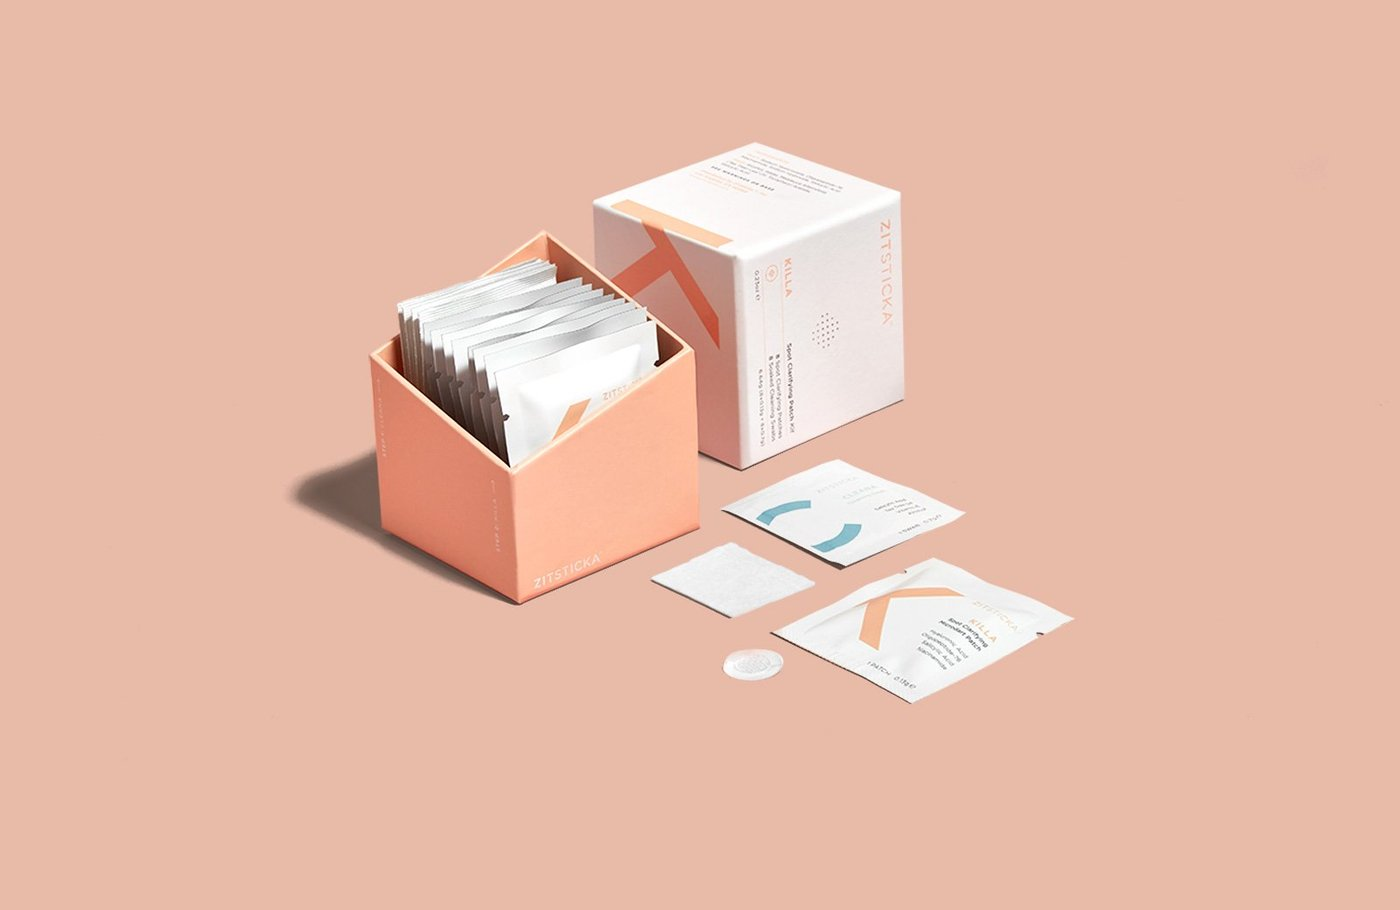 Zitsticka Product  KILLA™ KIT (8 patches  8 swabs) - Blush Rose